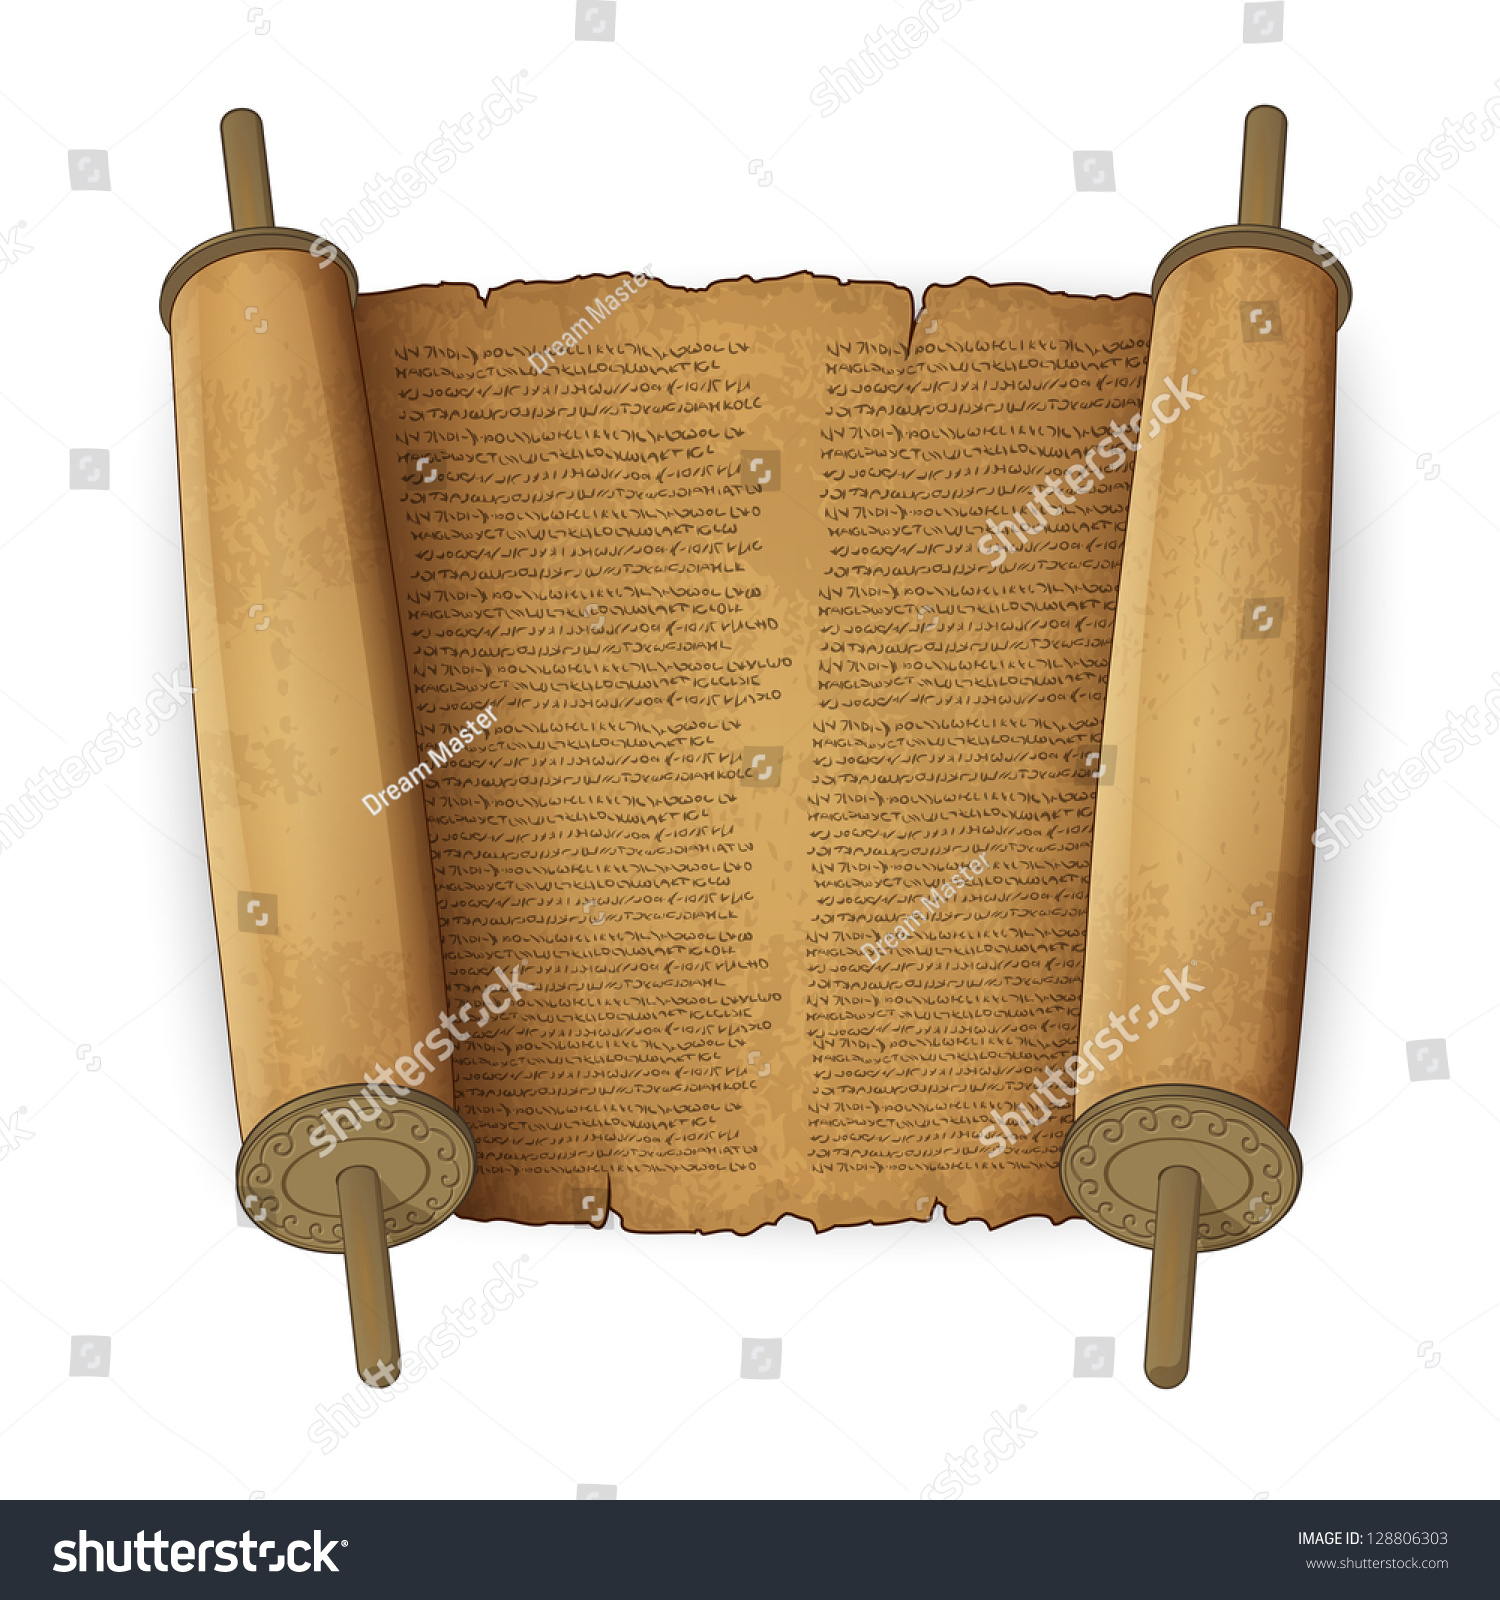 Ancient Scroll: Vector Illustration Of Ancient Scrolls With Text Imitation